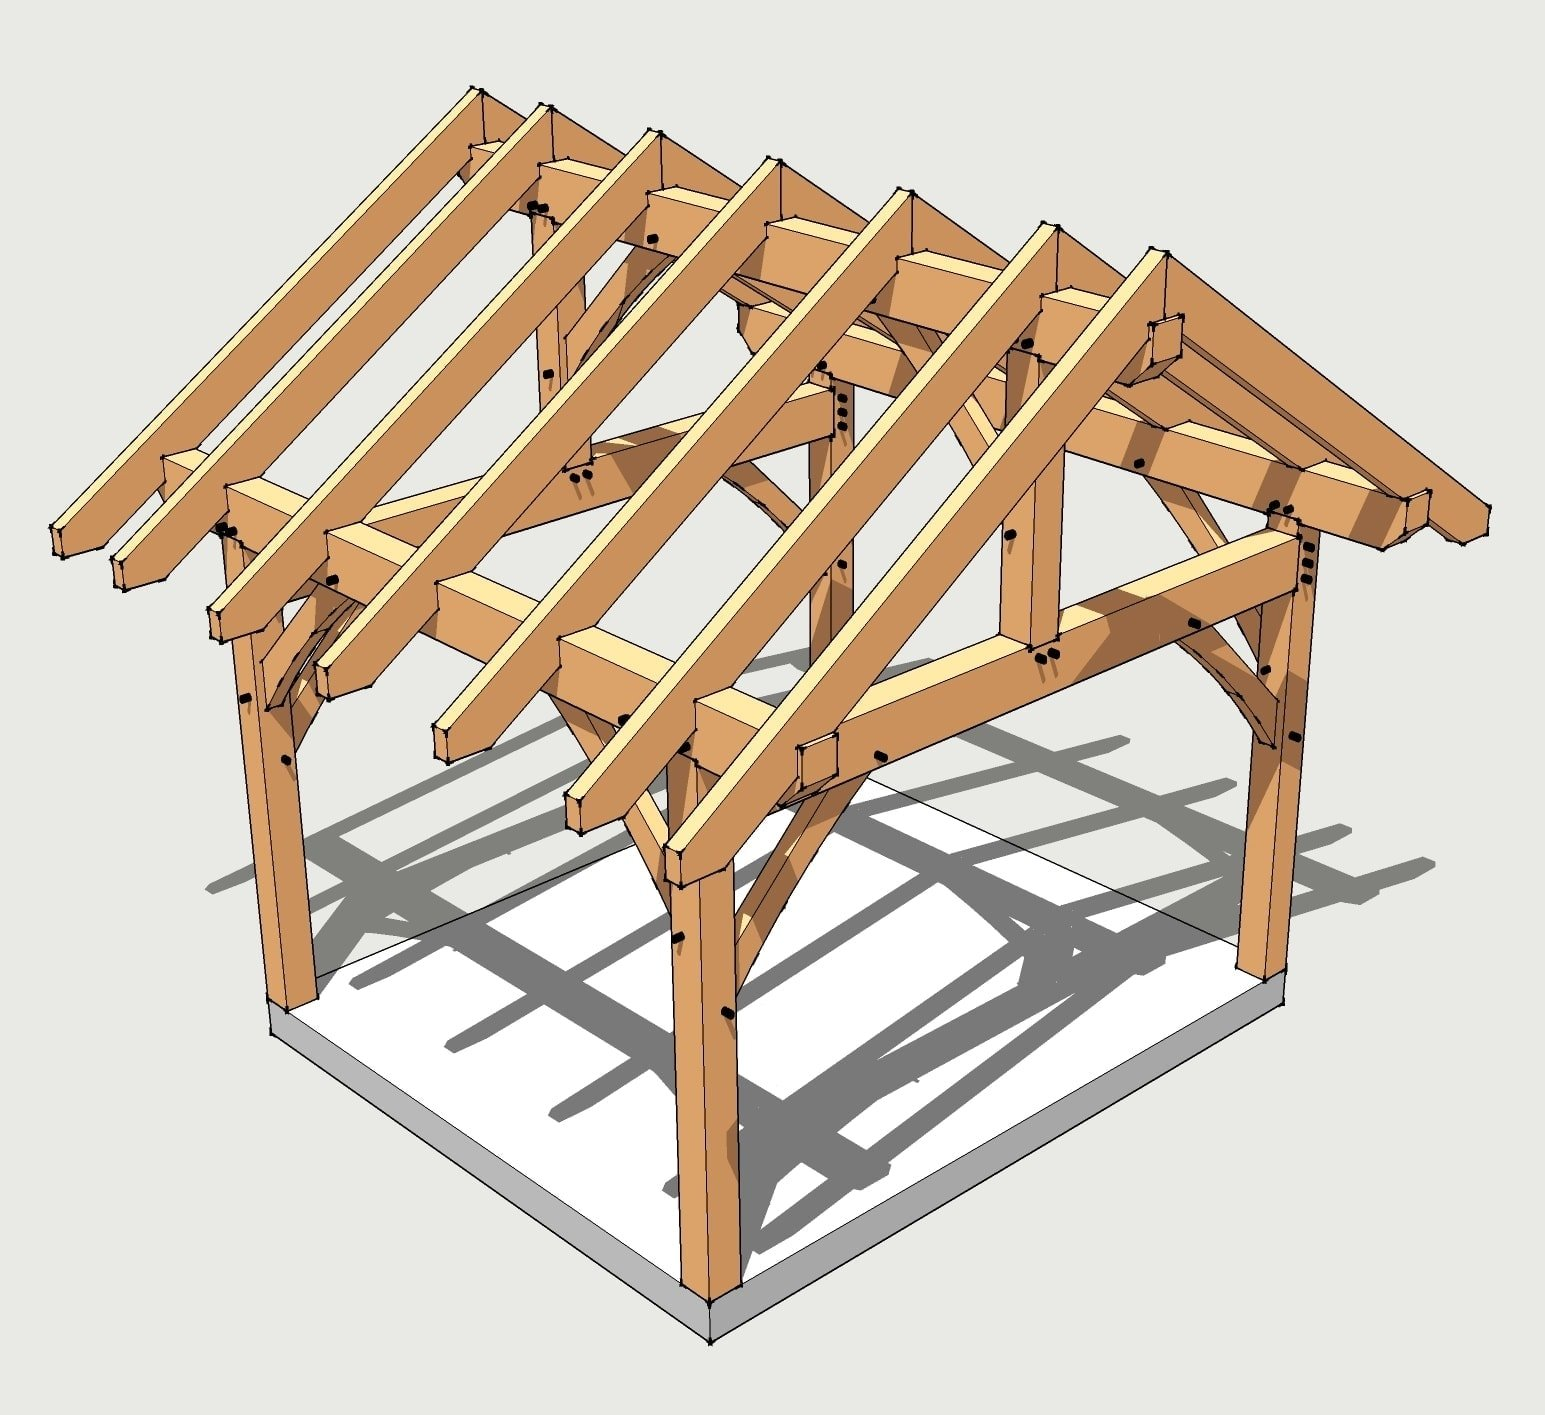 12x14 timber frame plan timber frame hq for Timber frame designs